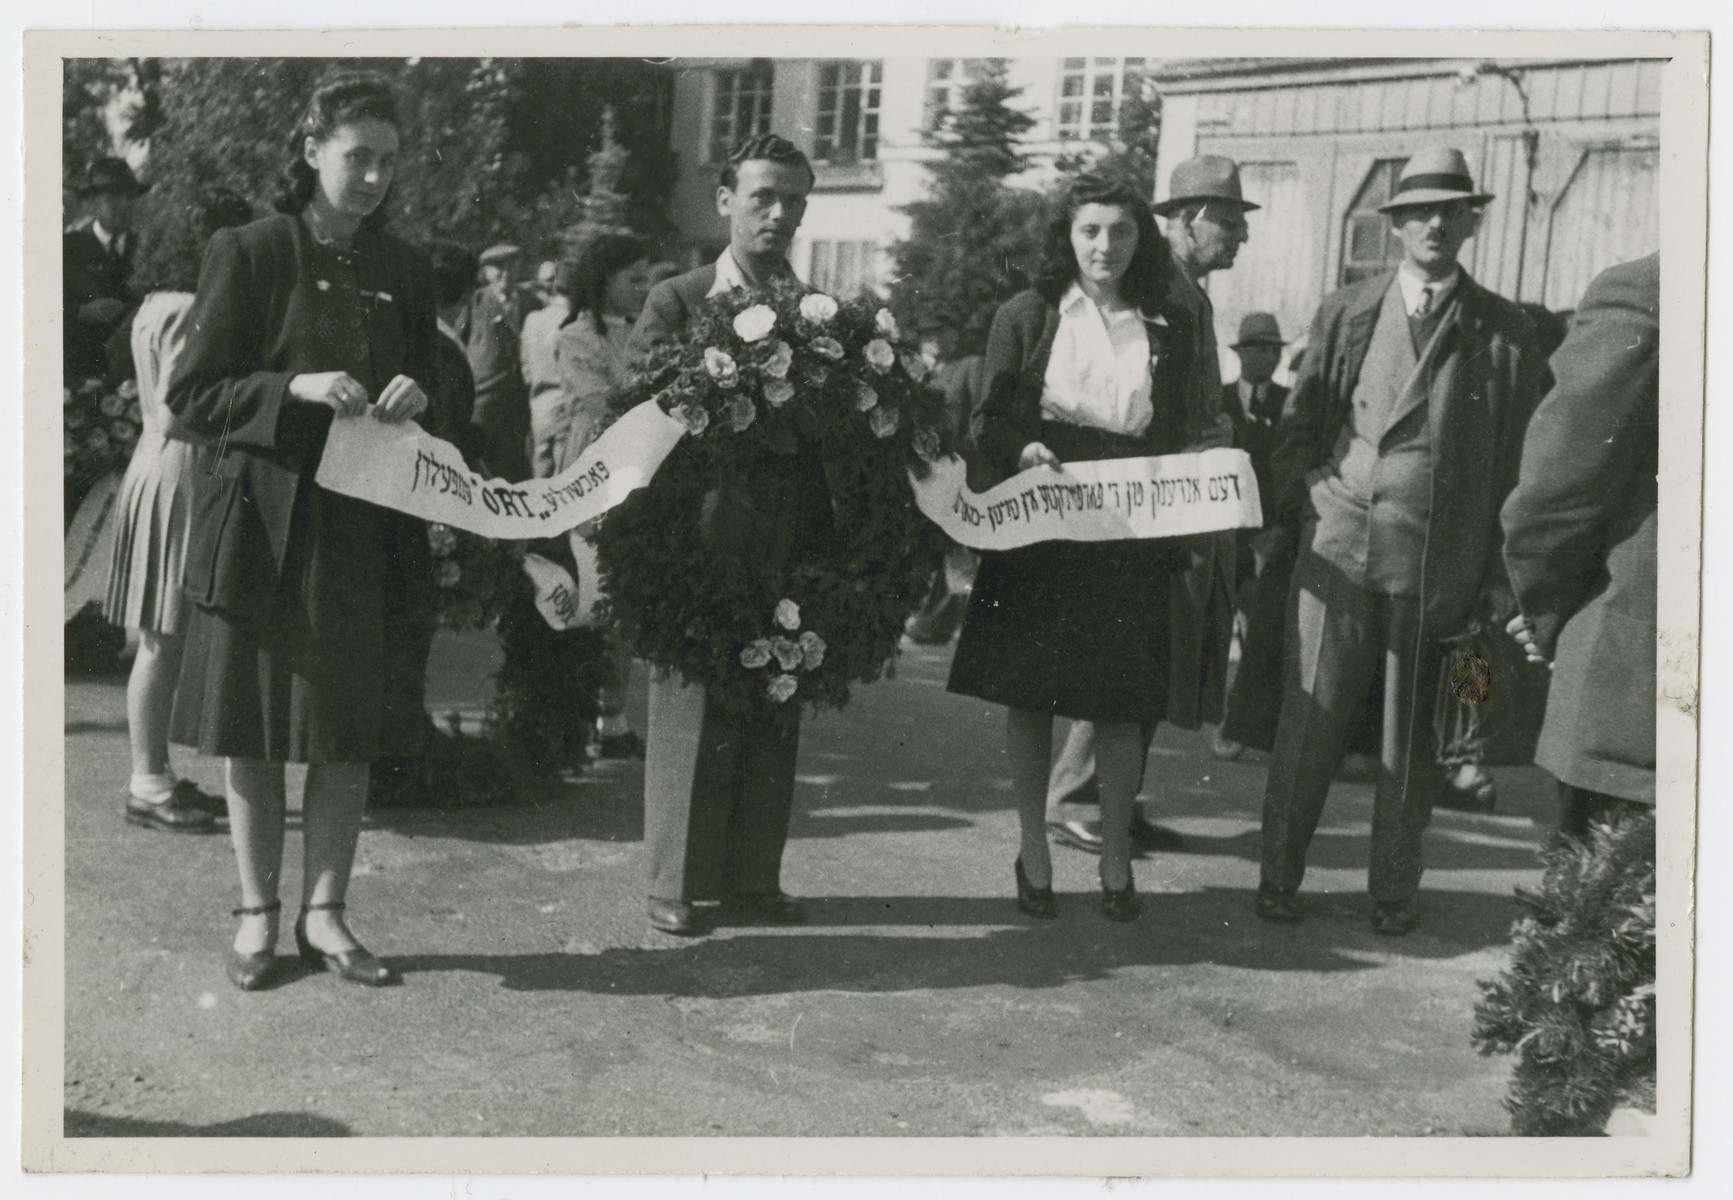 Jews from the Eggenfelden displaced persons camp participate in a commemorative march for the victims of a Nazi death march.  Vera Spitz is pictured third from the left.